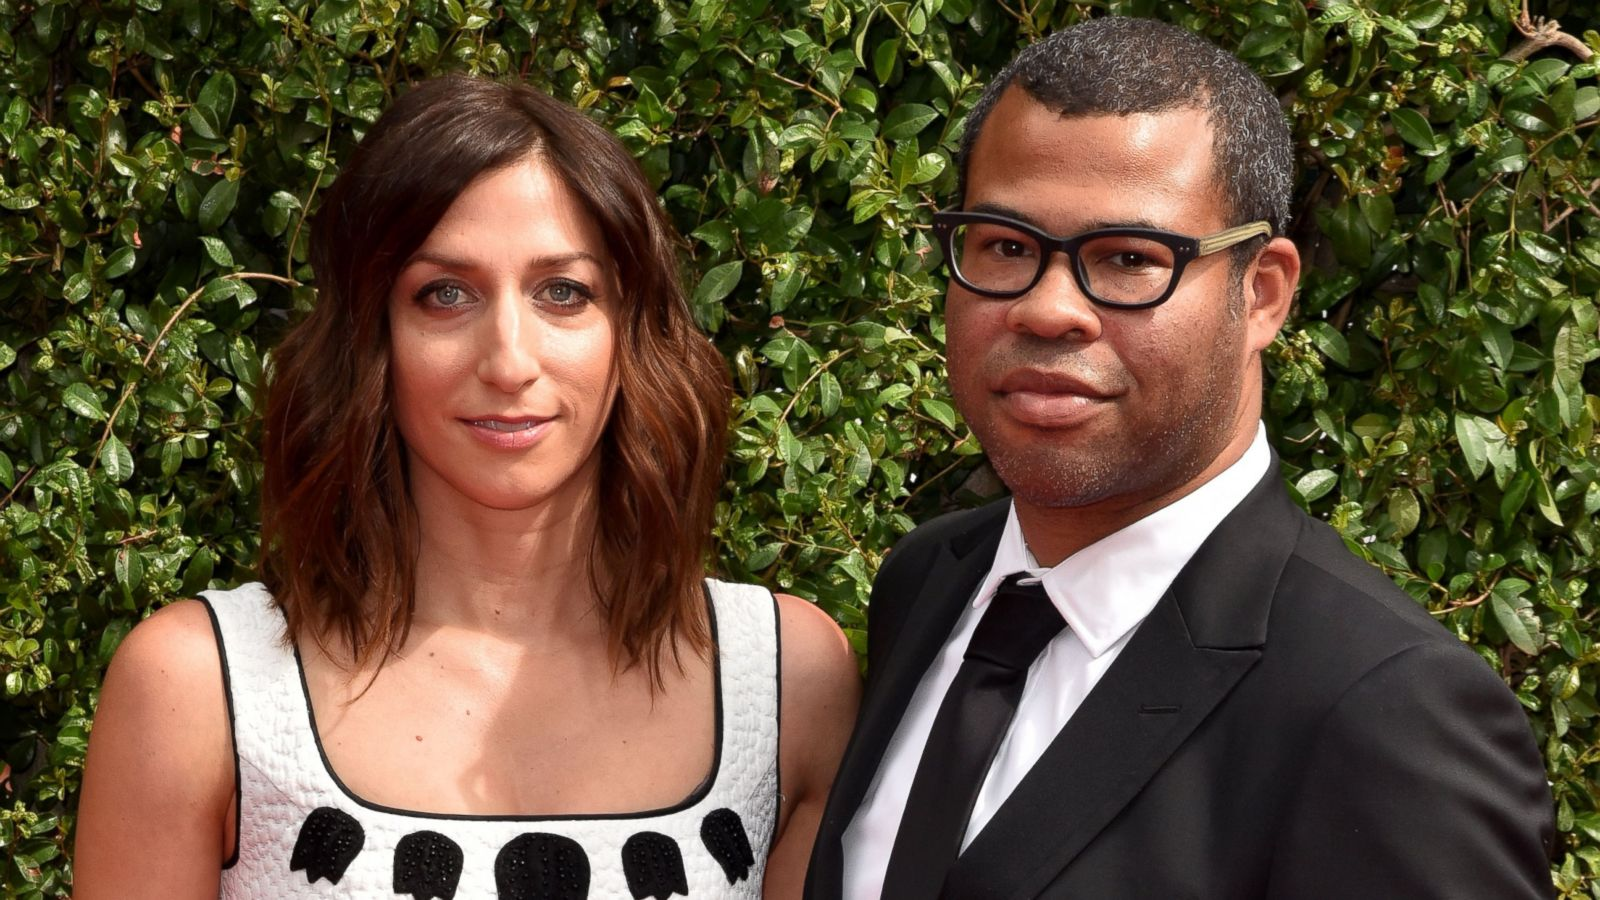 Comedy Couple Jordan Peele And Chelsea Peretti Are Engaged Abc News